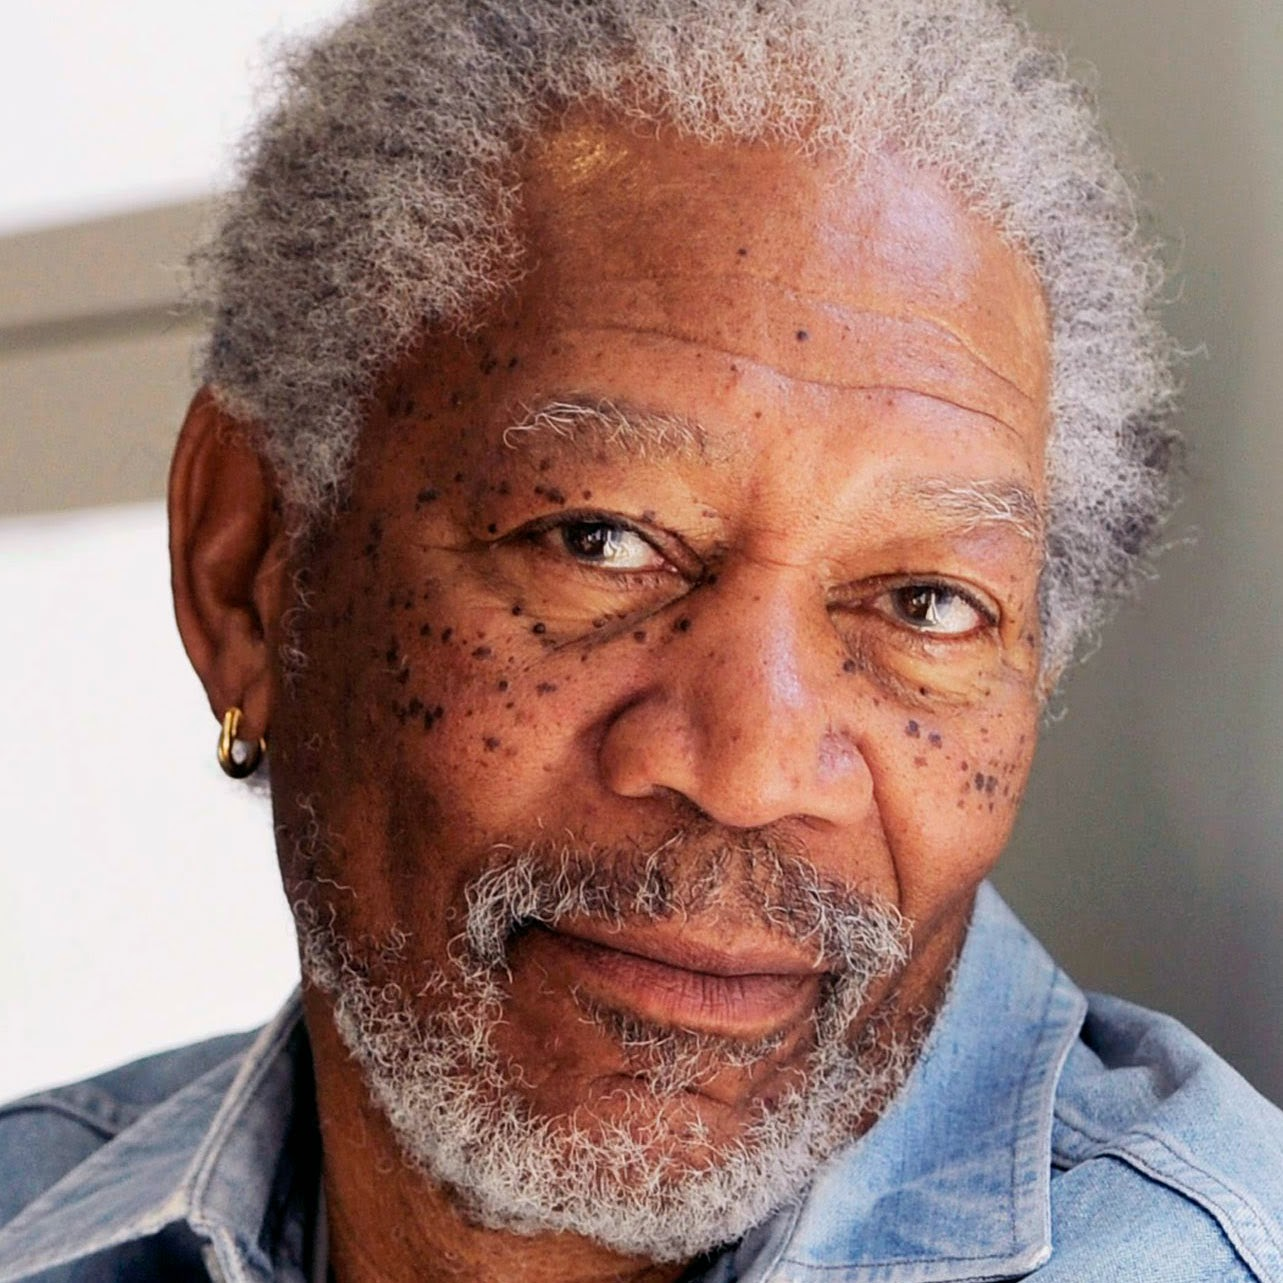 Morgan freeman voice changer voice changer software for The morgan